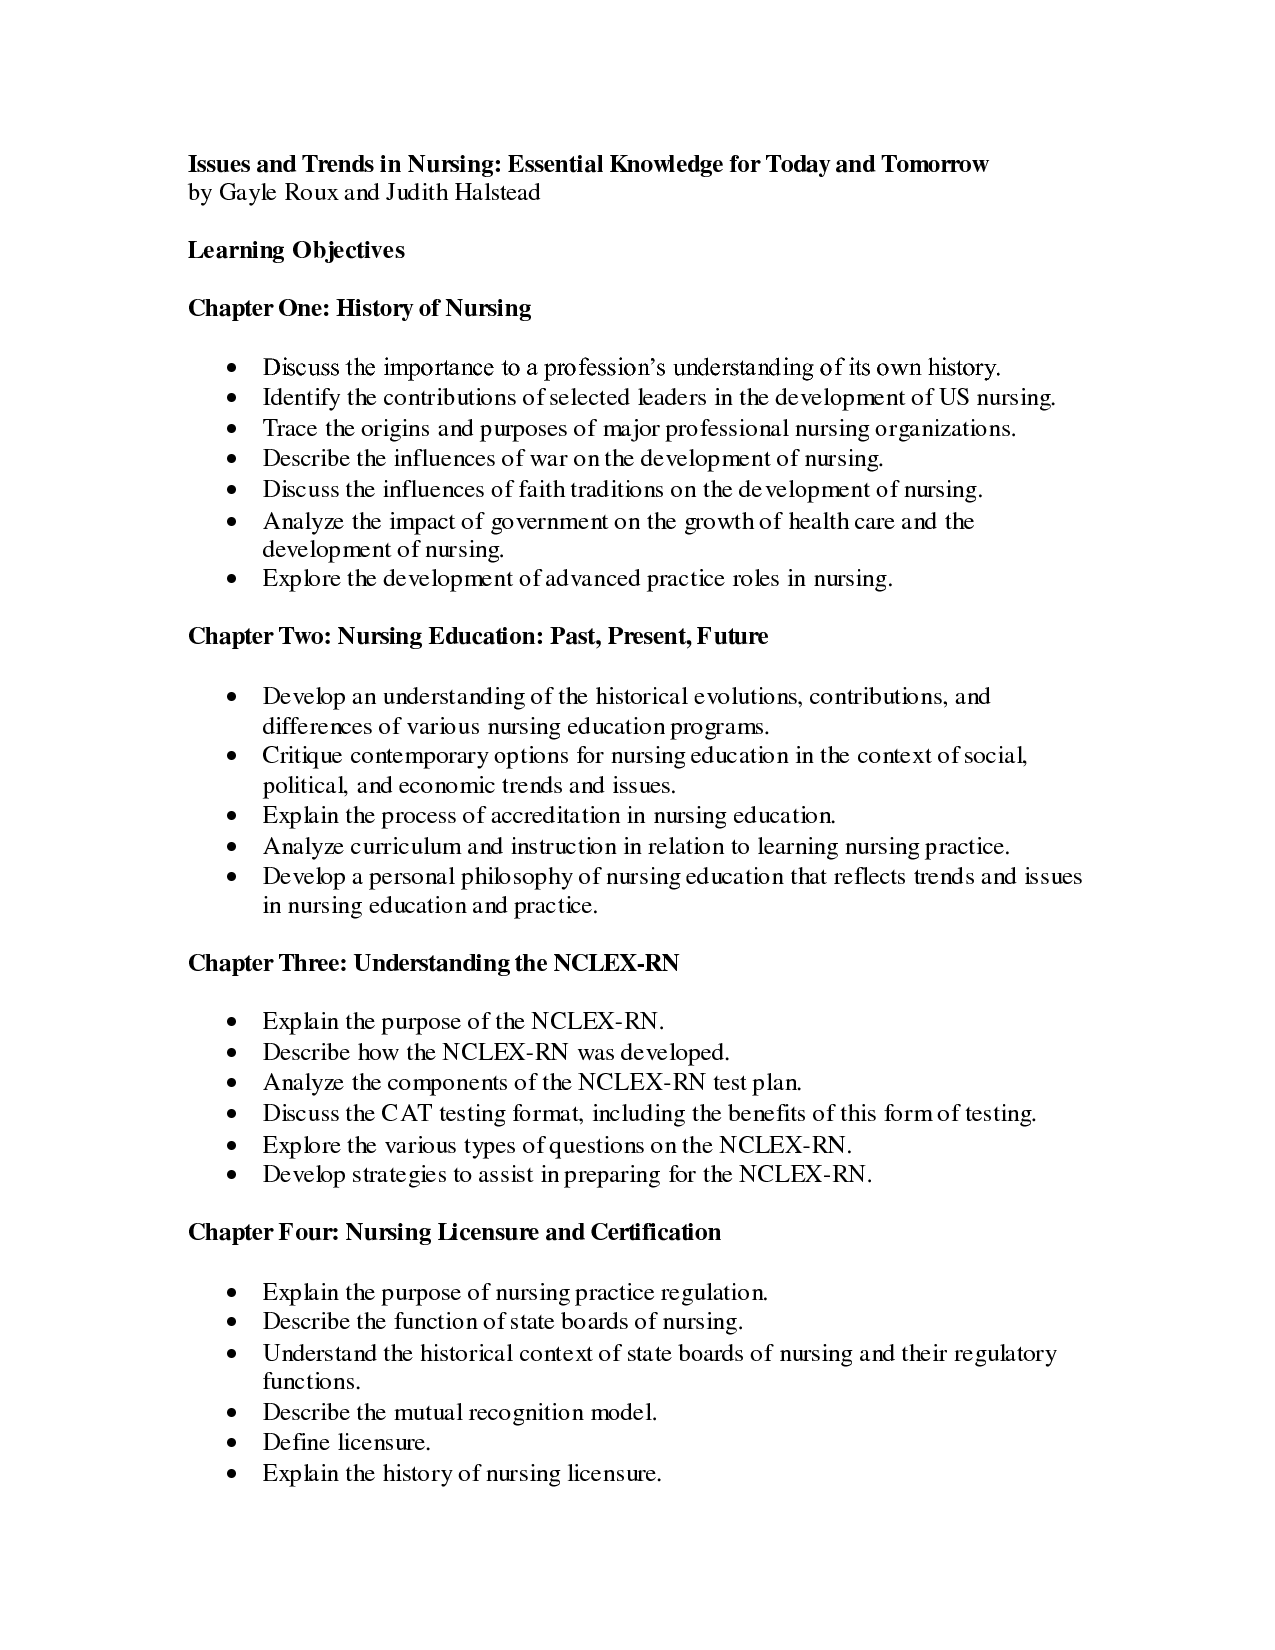 001 Research Paper On Nursing Wondrous Topics Peer Reviewed Articles Shortage For Full